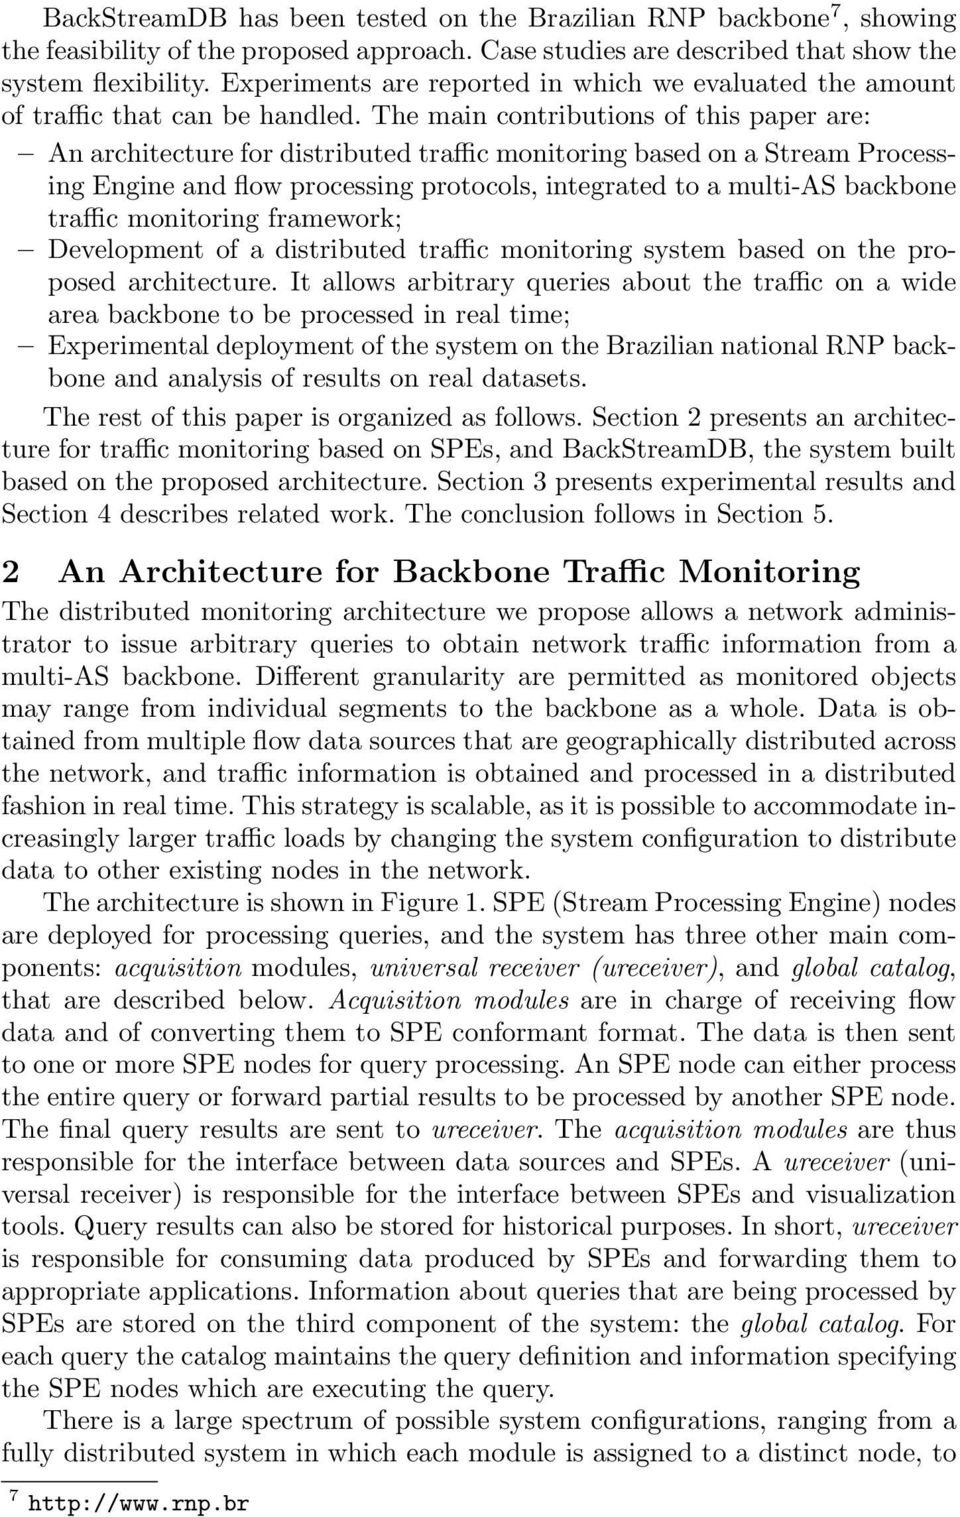 The main contributions of this paper are: An architecture for distributed traffic monitoring based on a Stream Processing Engine and flow processing protocols, integrated to a multi-as backbone